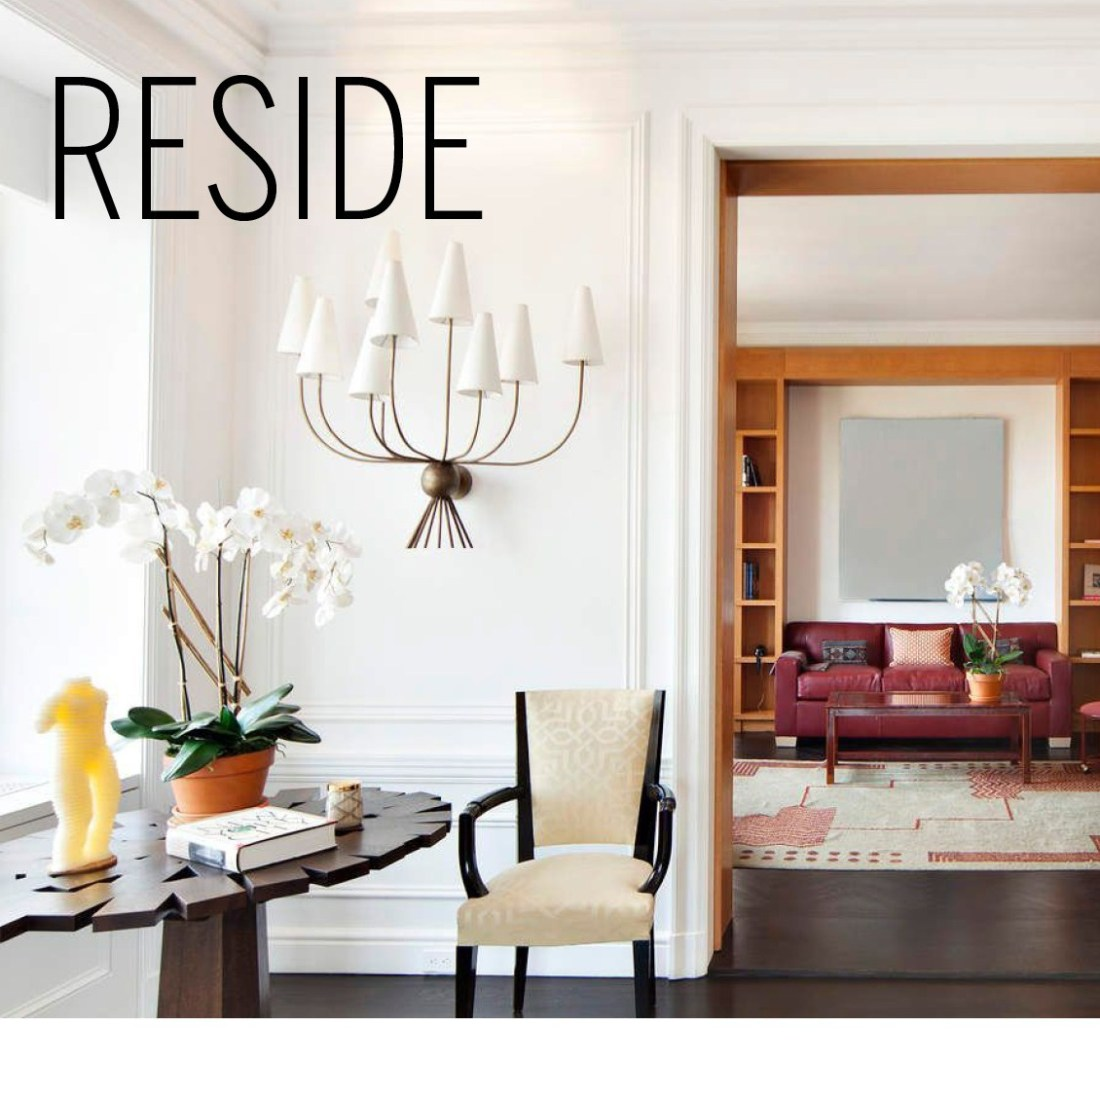 Mary Stuart Freydberg Shares Sotheby's International Realty RESIDE Magazine